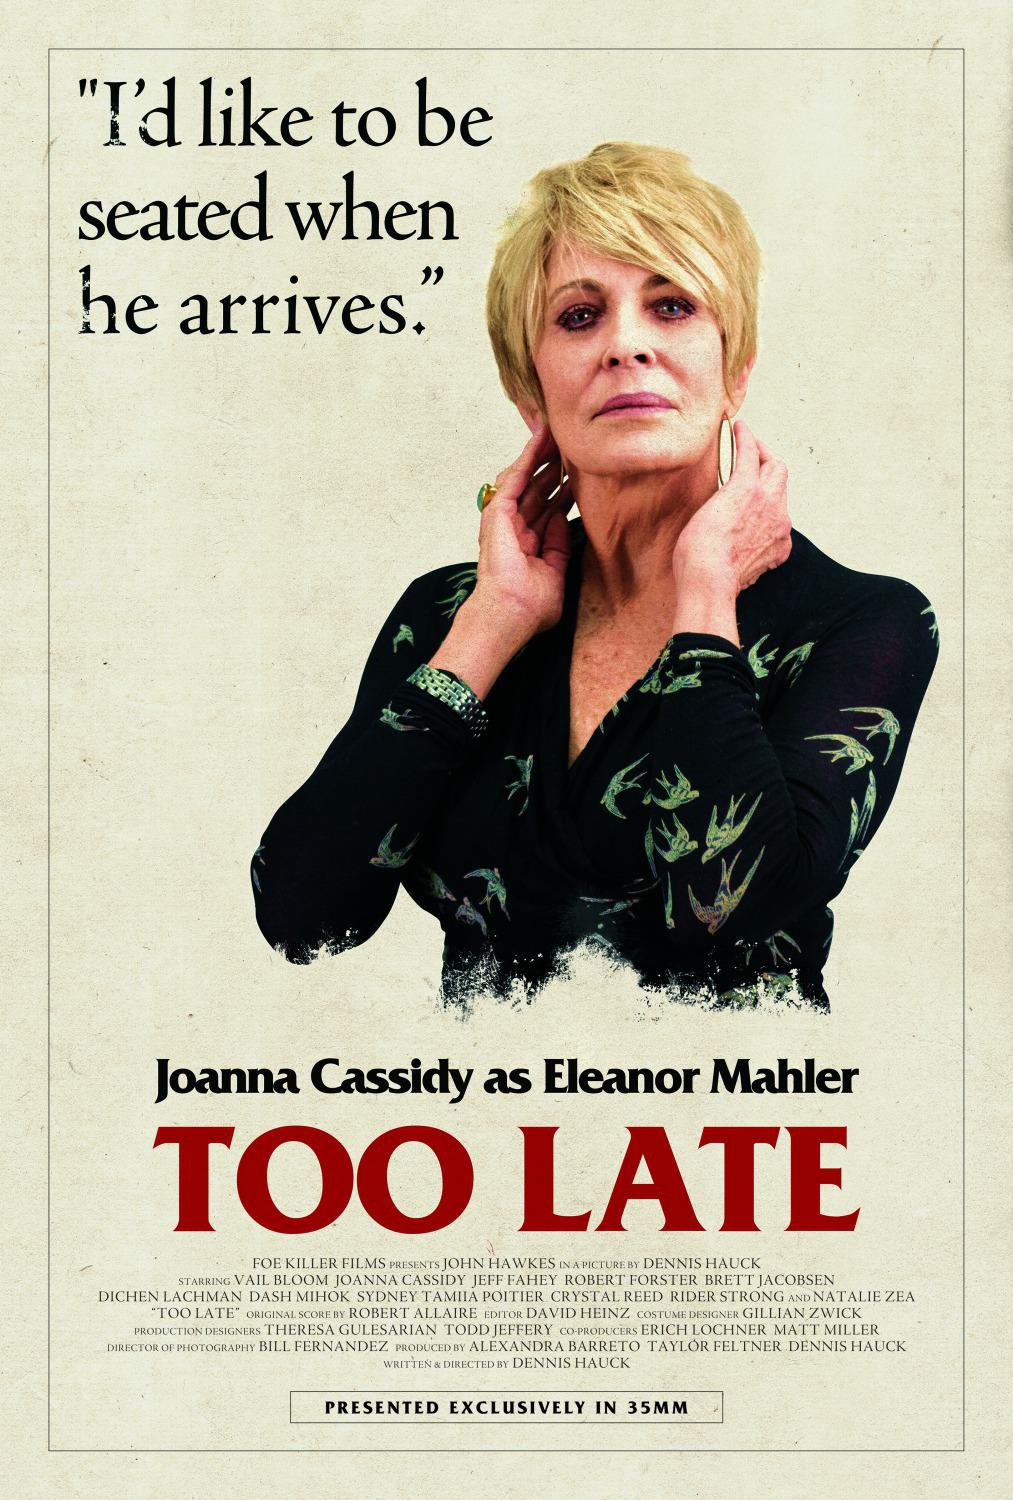 Troppo Tardi - Too Late - Joanna Cassidy as Eleanor Mahler